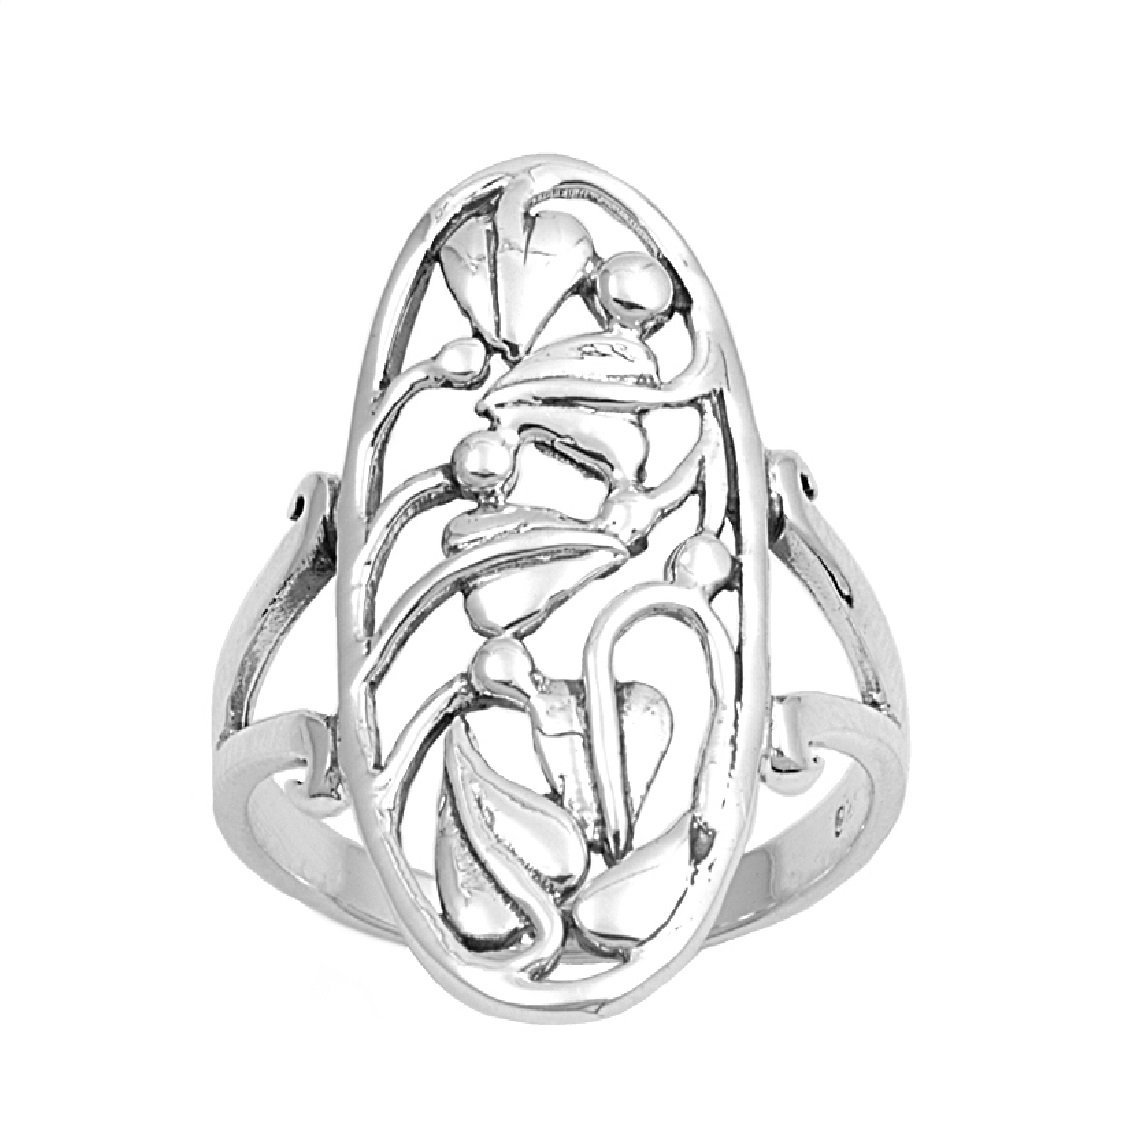 925 Sterling Silver Oblong Trace work Design Ring Size 6